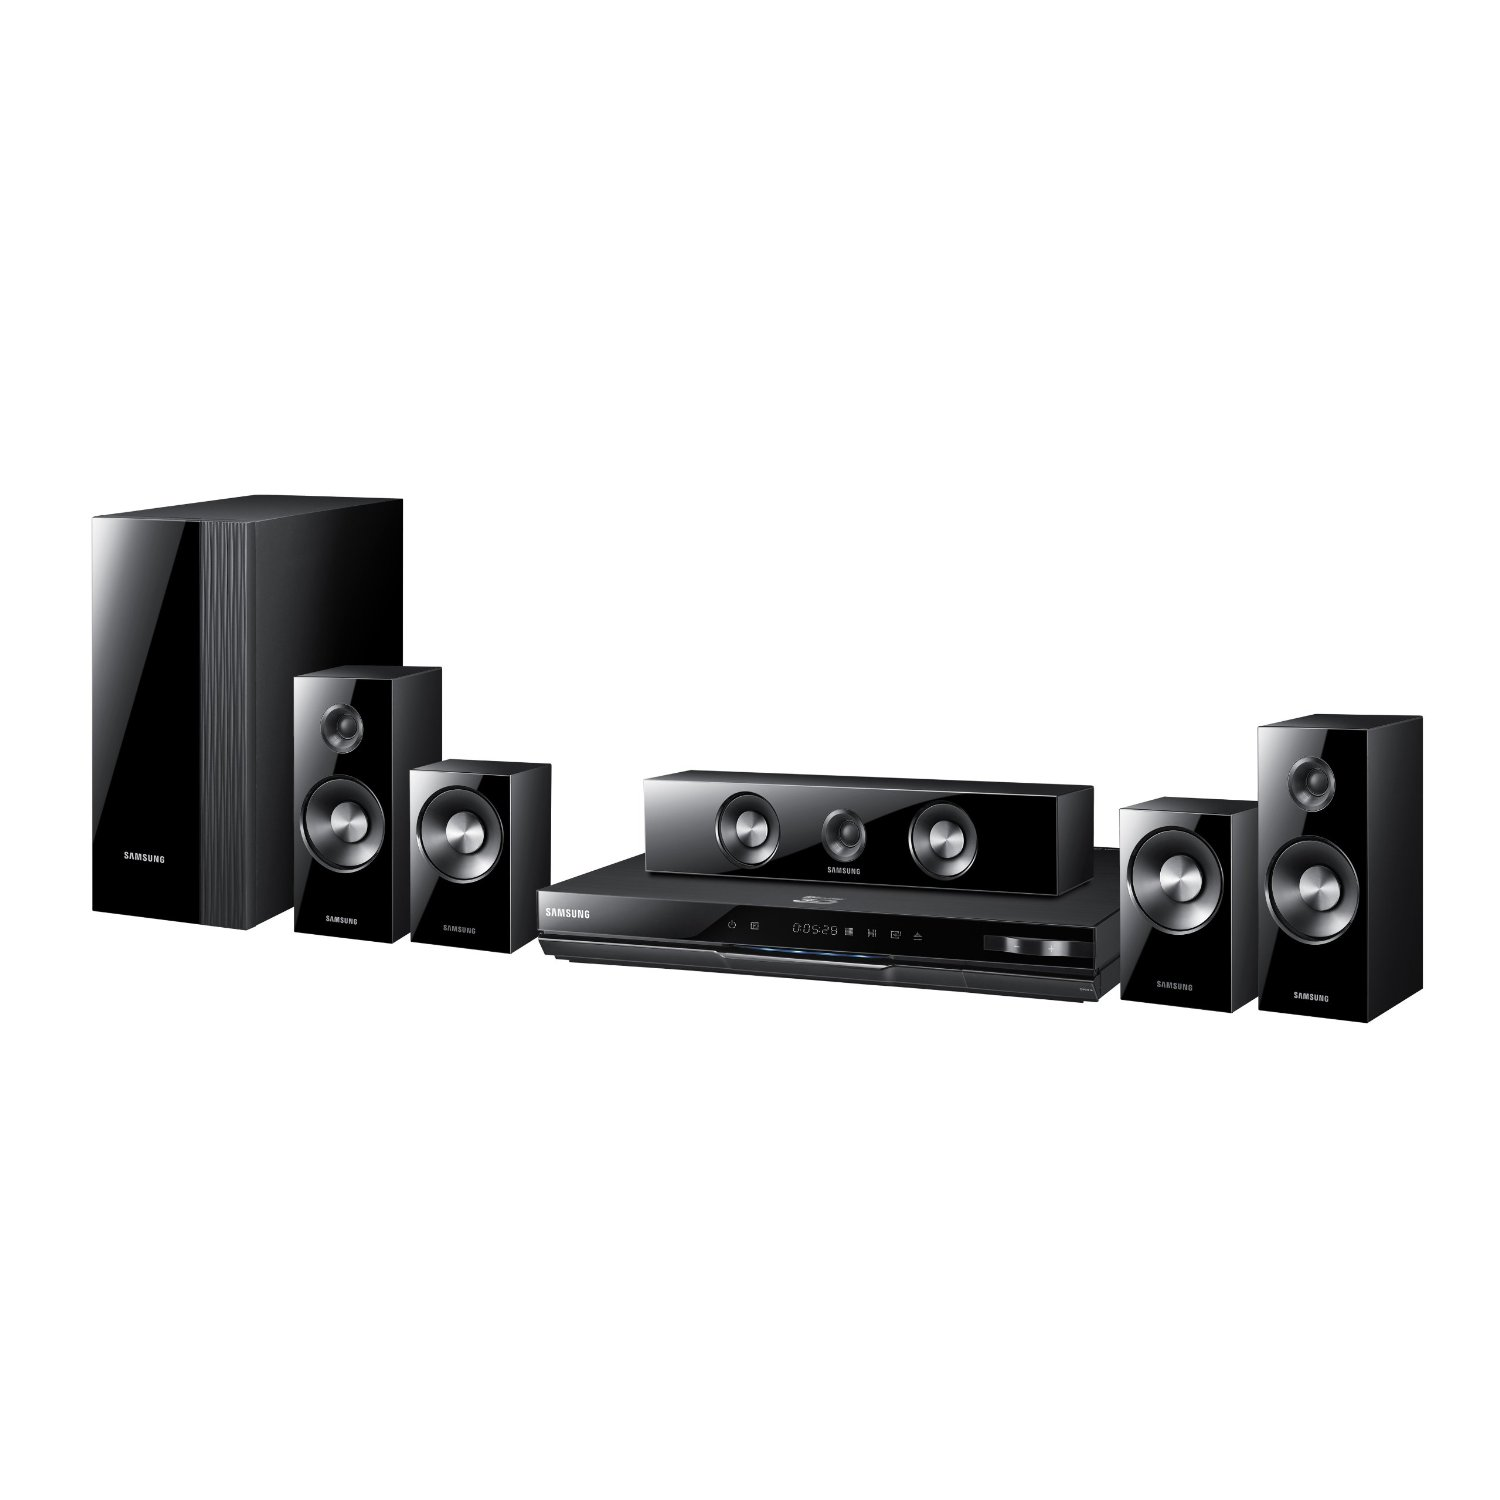 samsung electronics ht d5500 home theater system samsung home theatre. Black Bedroom Furniture Sets. Home Design Ideas